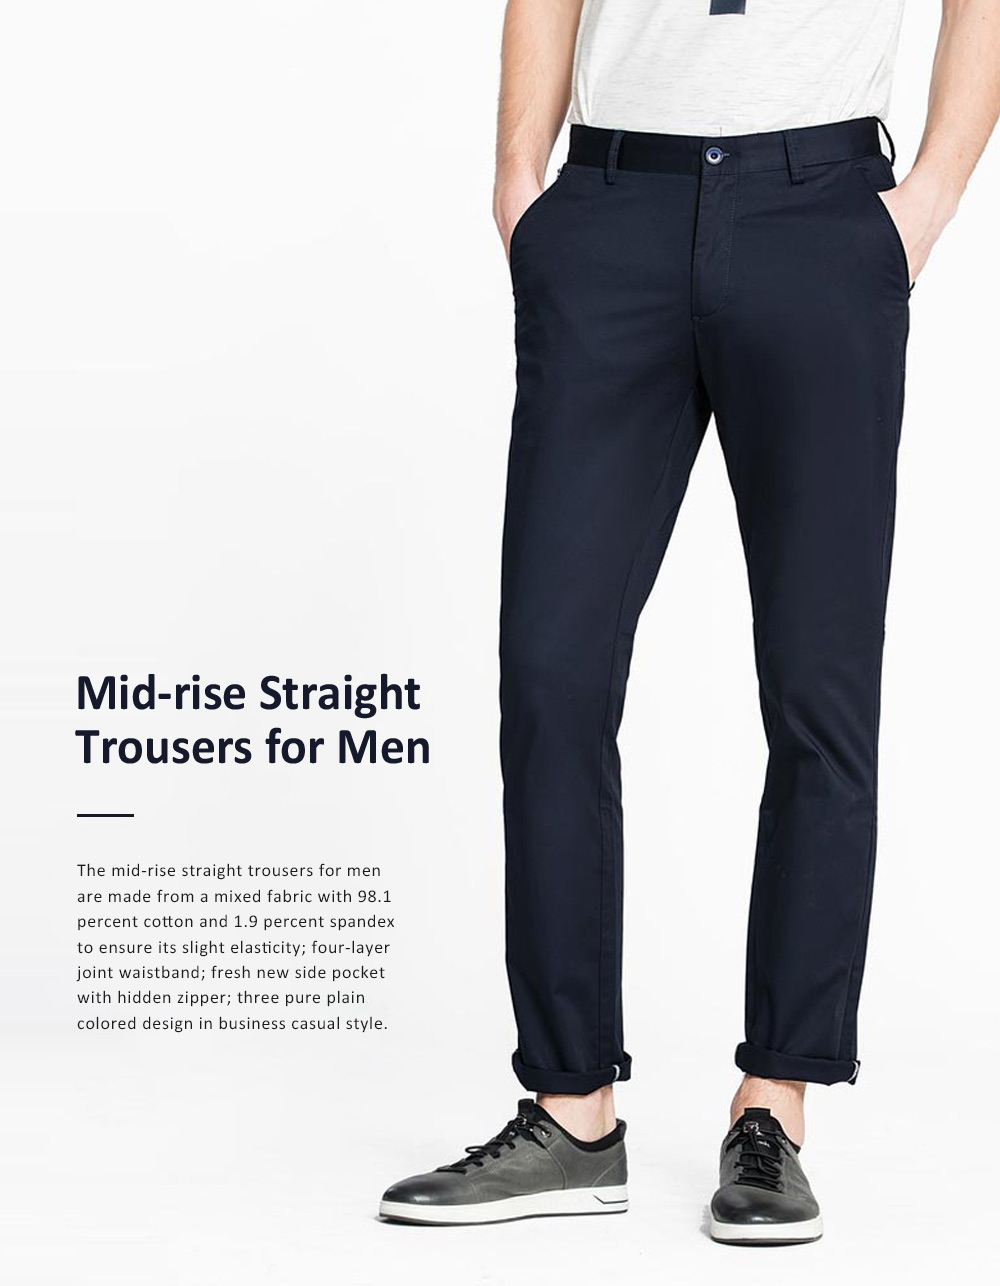 Mid-rise Straight-leg Pants for Men Spring, Pure Color Designed Straight Trousers, Slightly Elastic Fabric Casual Style Men's Wear 0